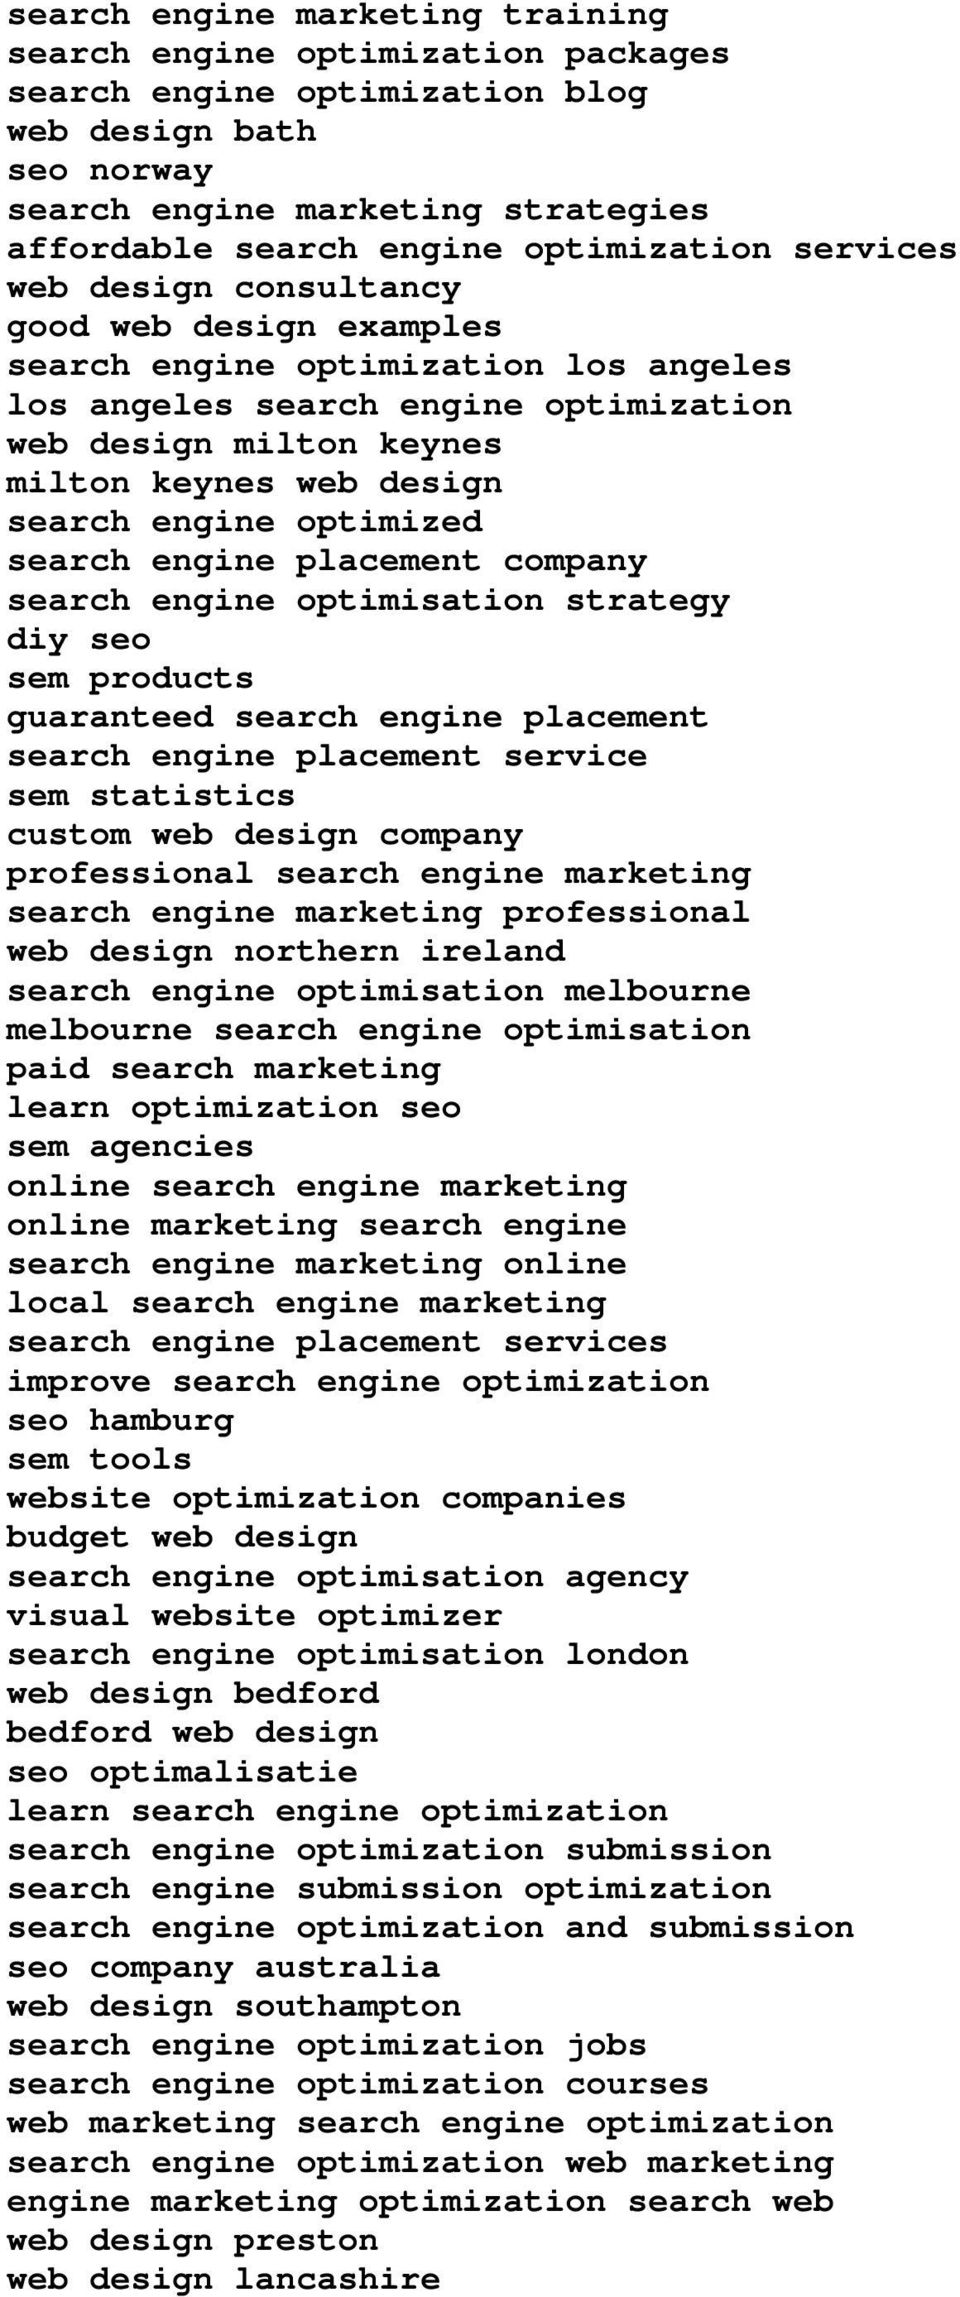 search engine optimized search engine placement company search engine optimisation strategy diy seo sem products guaranteed search engine placement search engine placement service sem statistics